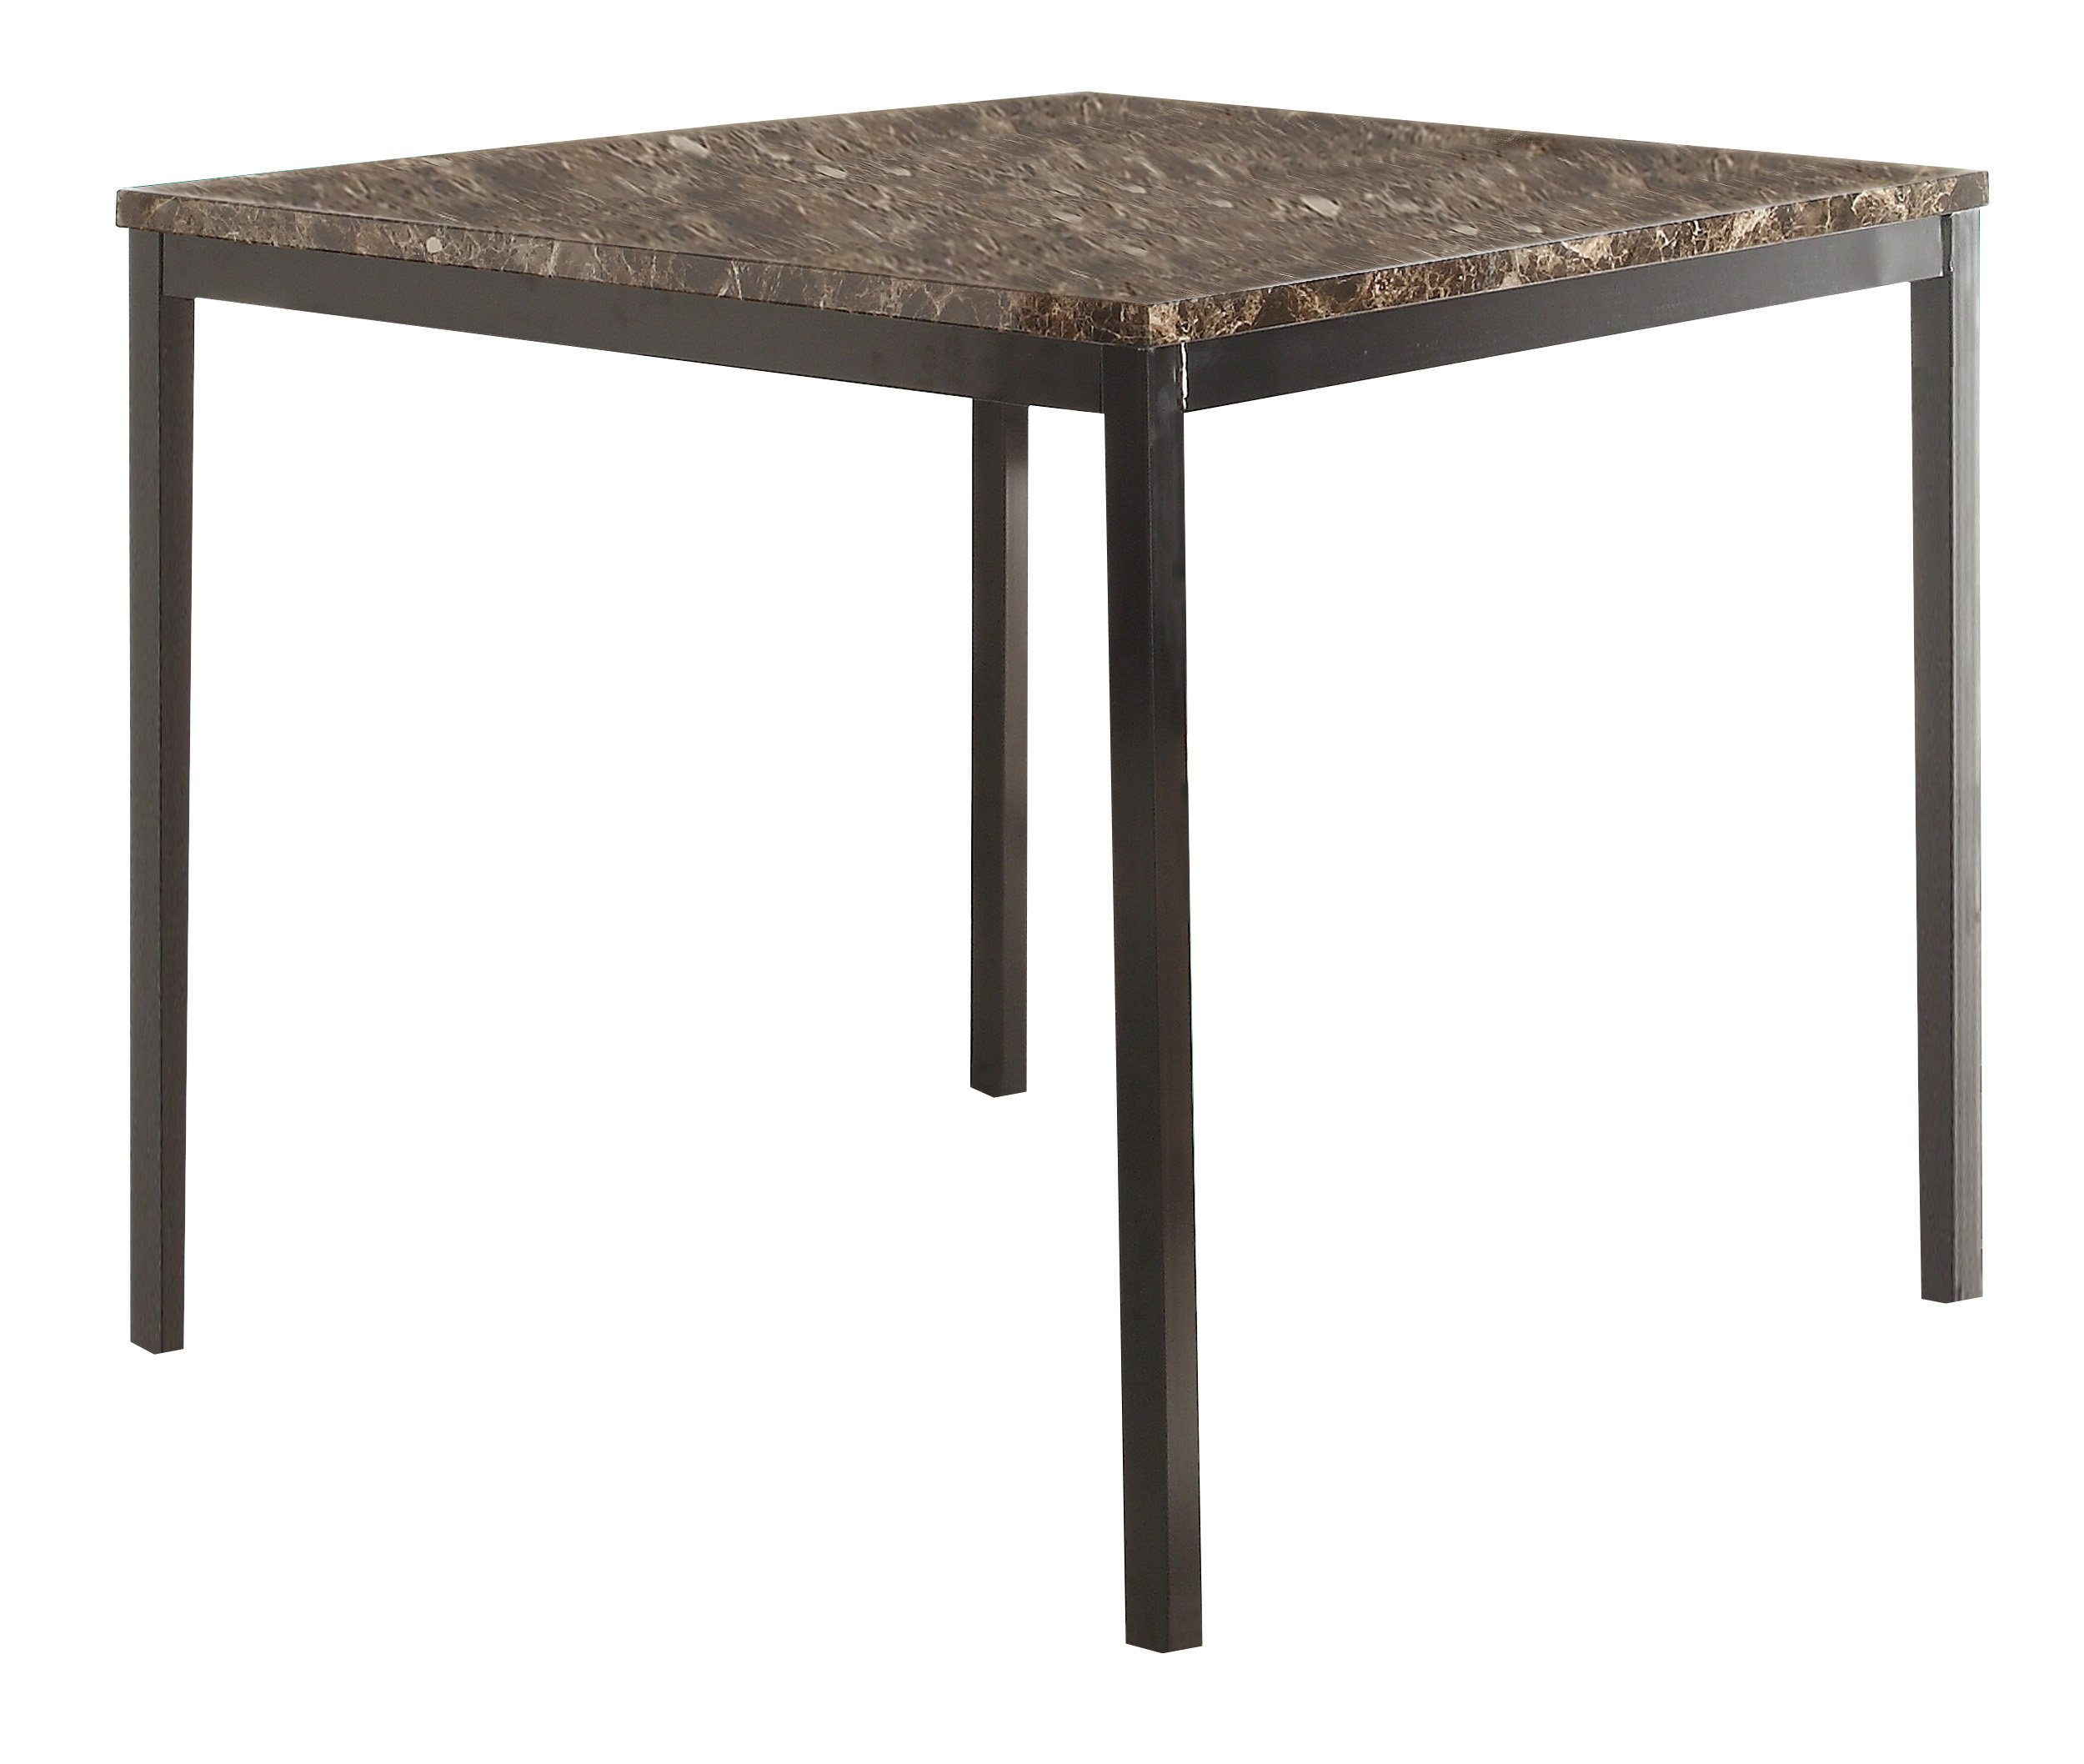 Homelegance Tempe Counter Height Table, 40'' x 40'', Brown by Homelegance